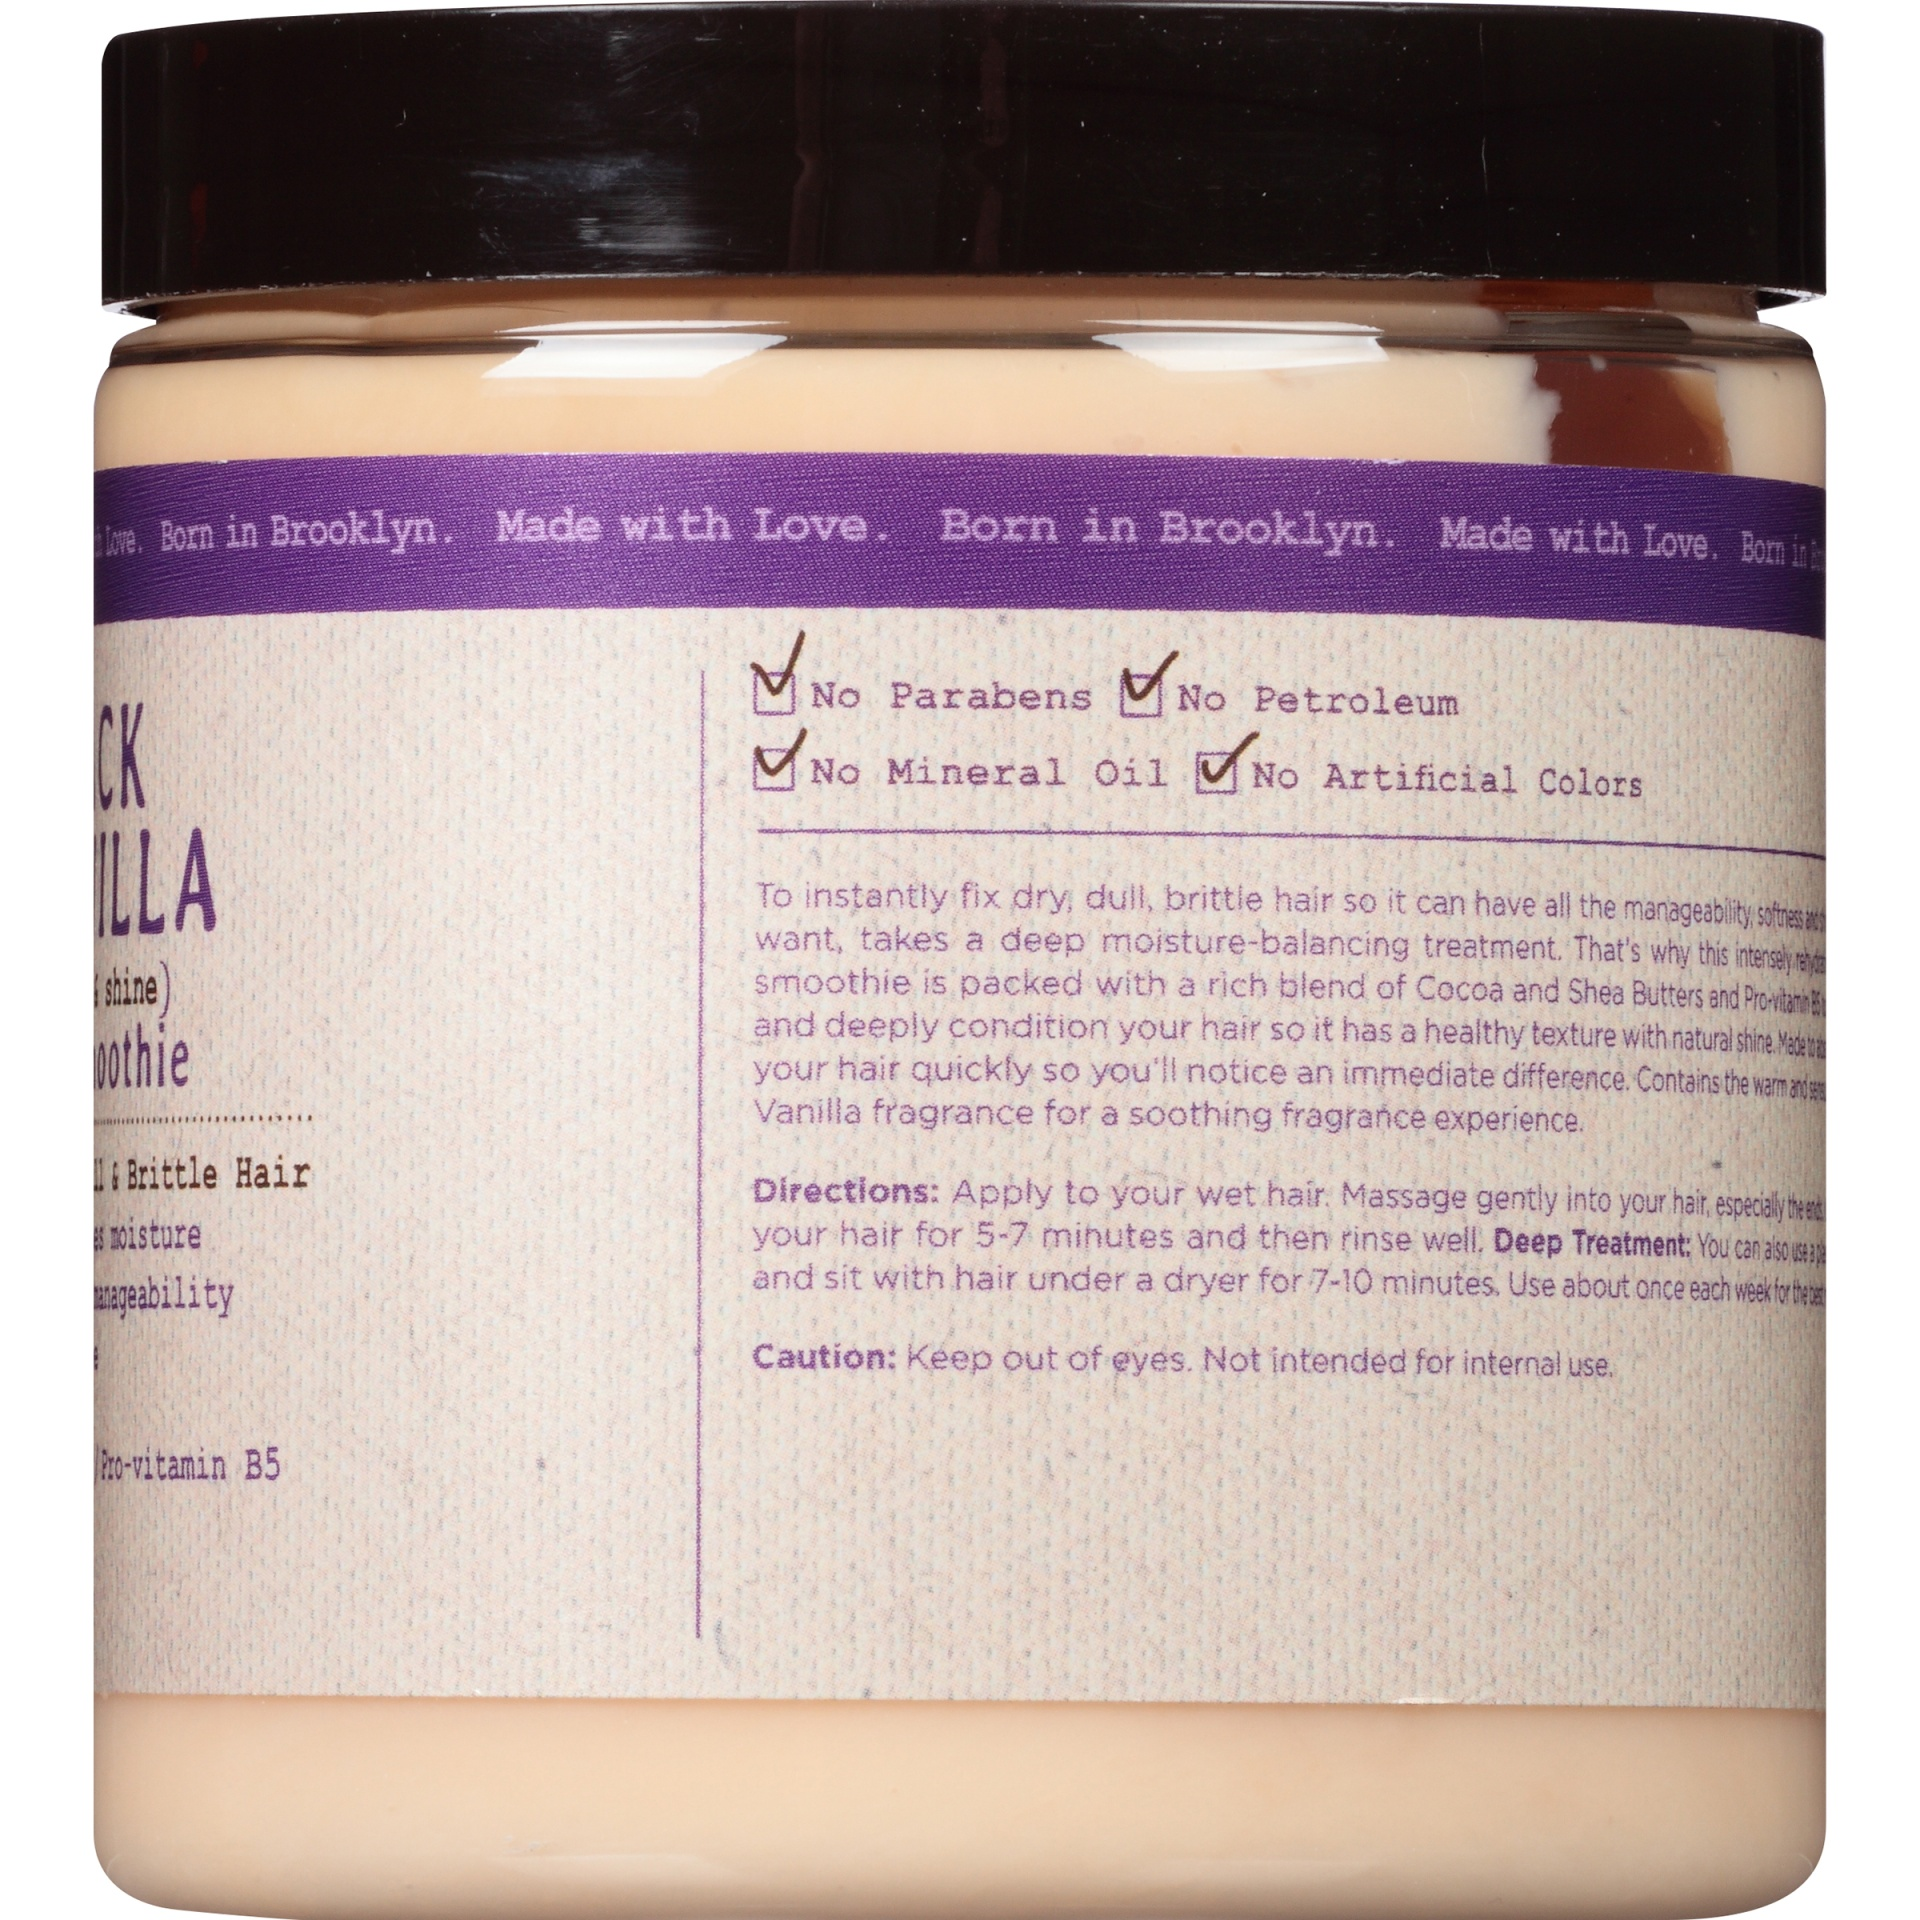 slide 4 of 6, Carol's Daughter Black Vanilla Moisture And Shine Hair Smoothie,